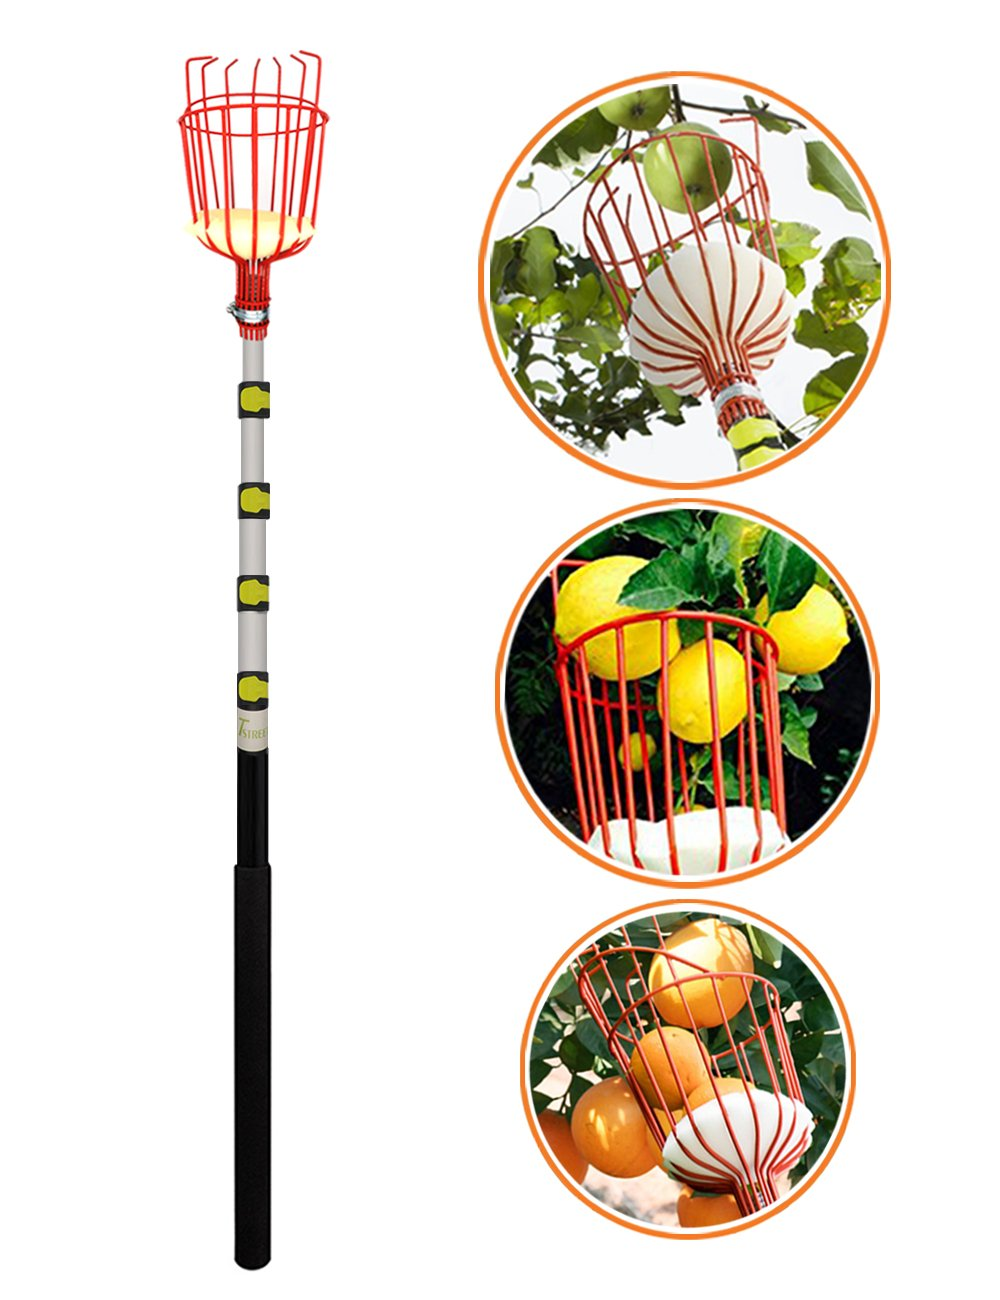 13-Foot Fruit Picker With Light-weight Aluminum Telescoping Pole And Bruise Free Basket For Apple,Pear,Peach,Orange And More Peach Harvesting,Handy 5 Section Extension Pole.-By EnergeticSky